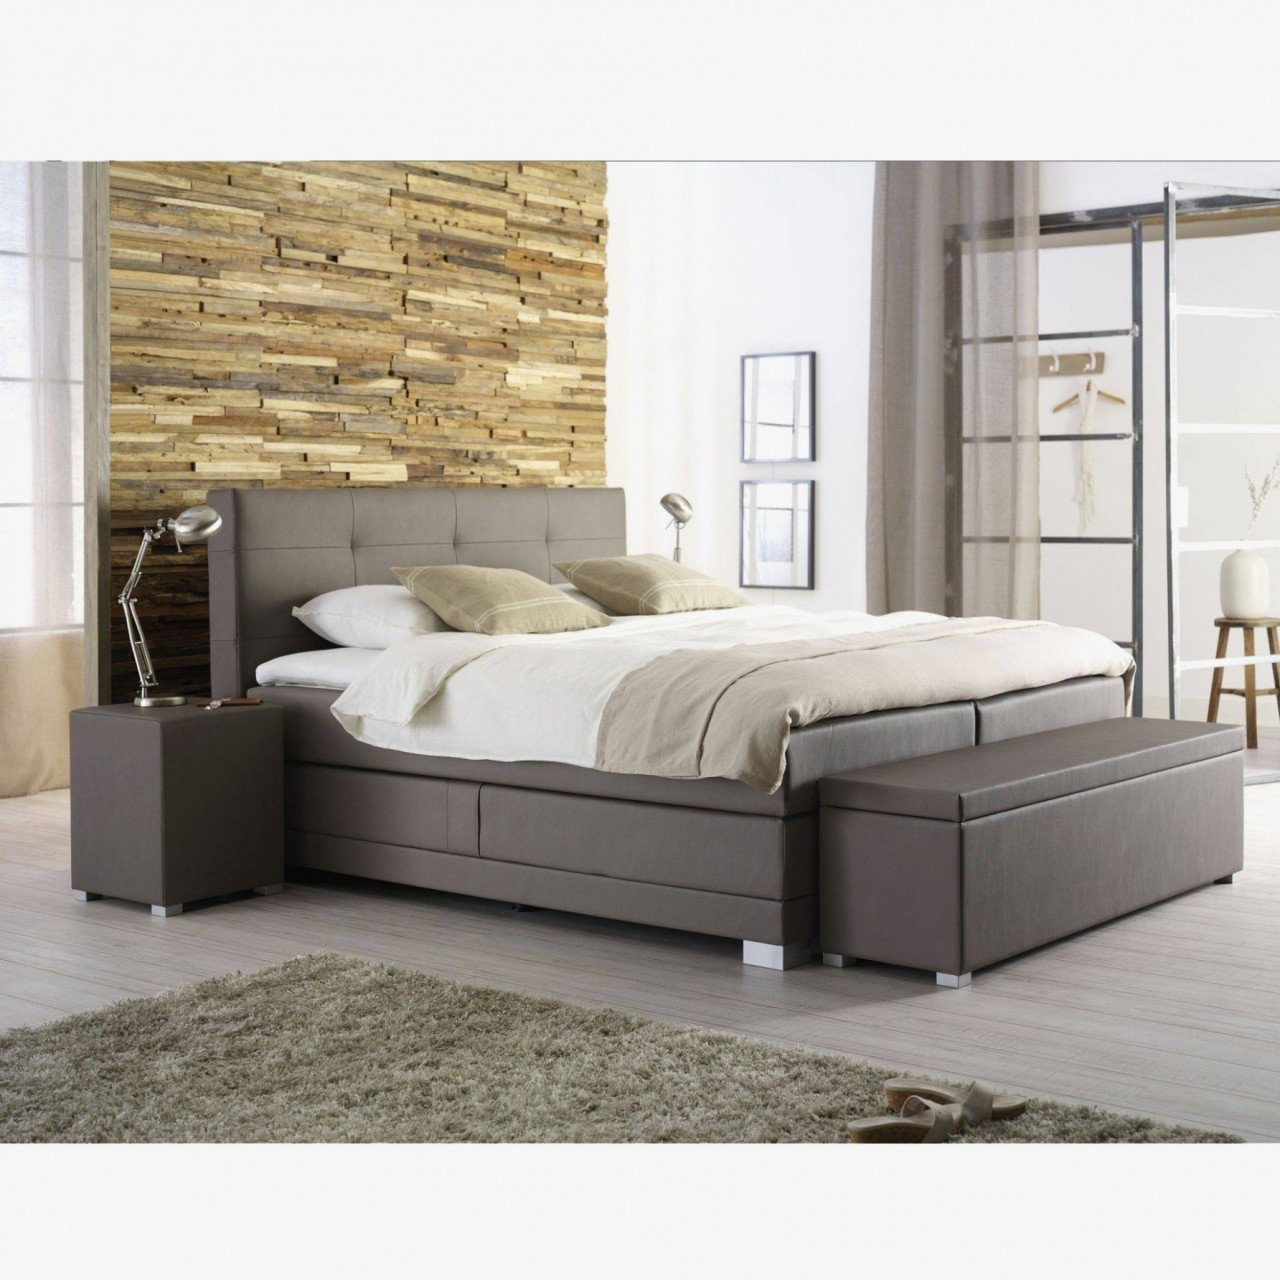 Bedroom Dressers On Sale Fresh Bed with Drawers Under — Procura Home Blog